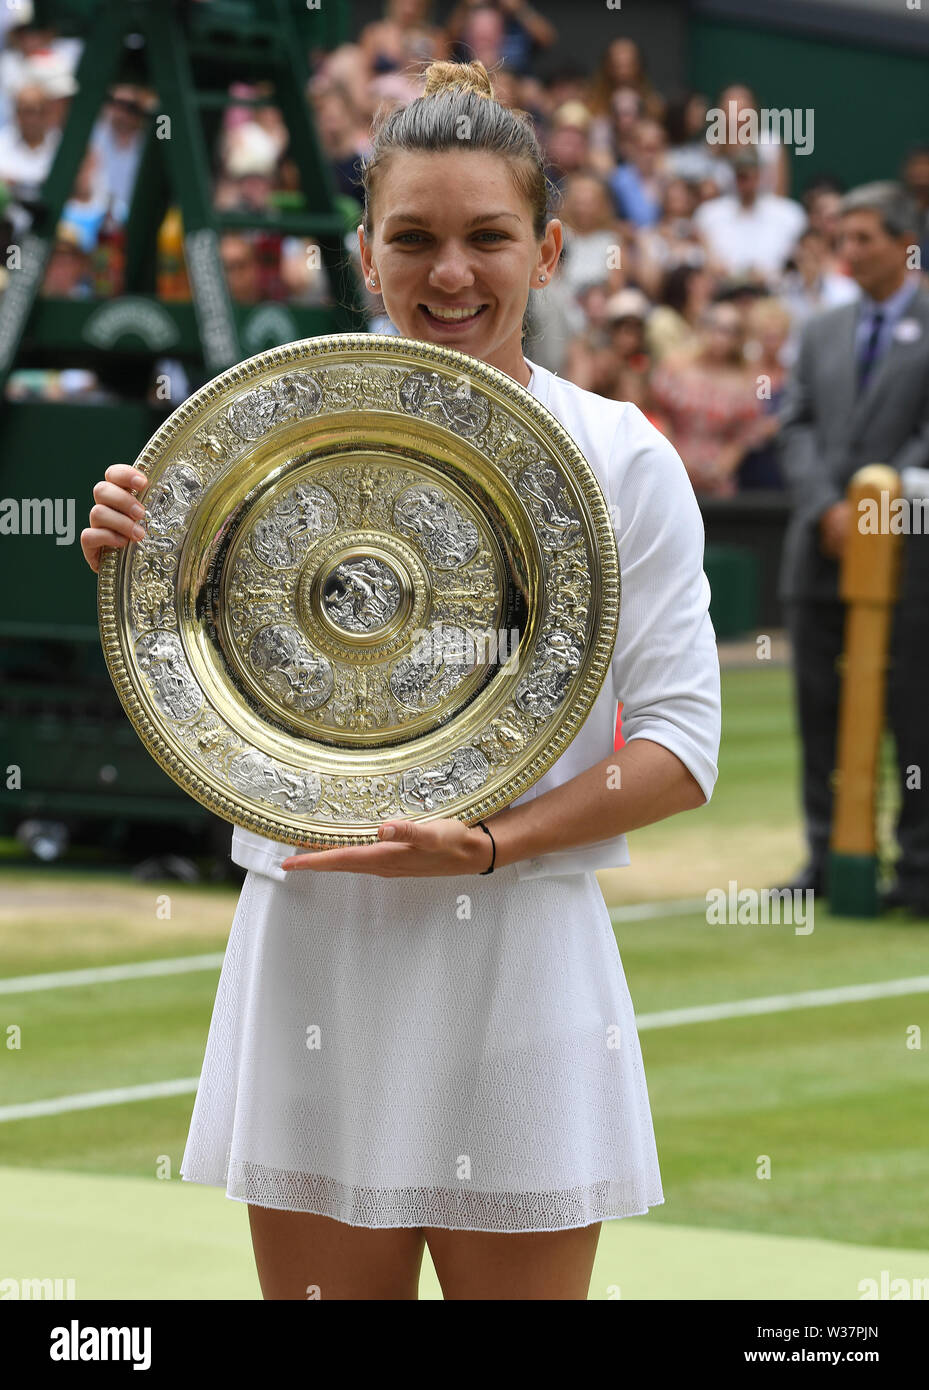 London, UK. 13th July, 2019. The Championships Wimbledon 2019 13072019 Simona Halep with winners trophy Venus rosewater Dish after she wins Ladies Singles Final Credit: Roger Parker/Alamy Live News - Stock Image